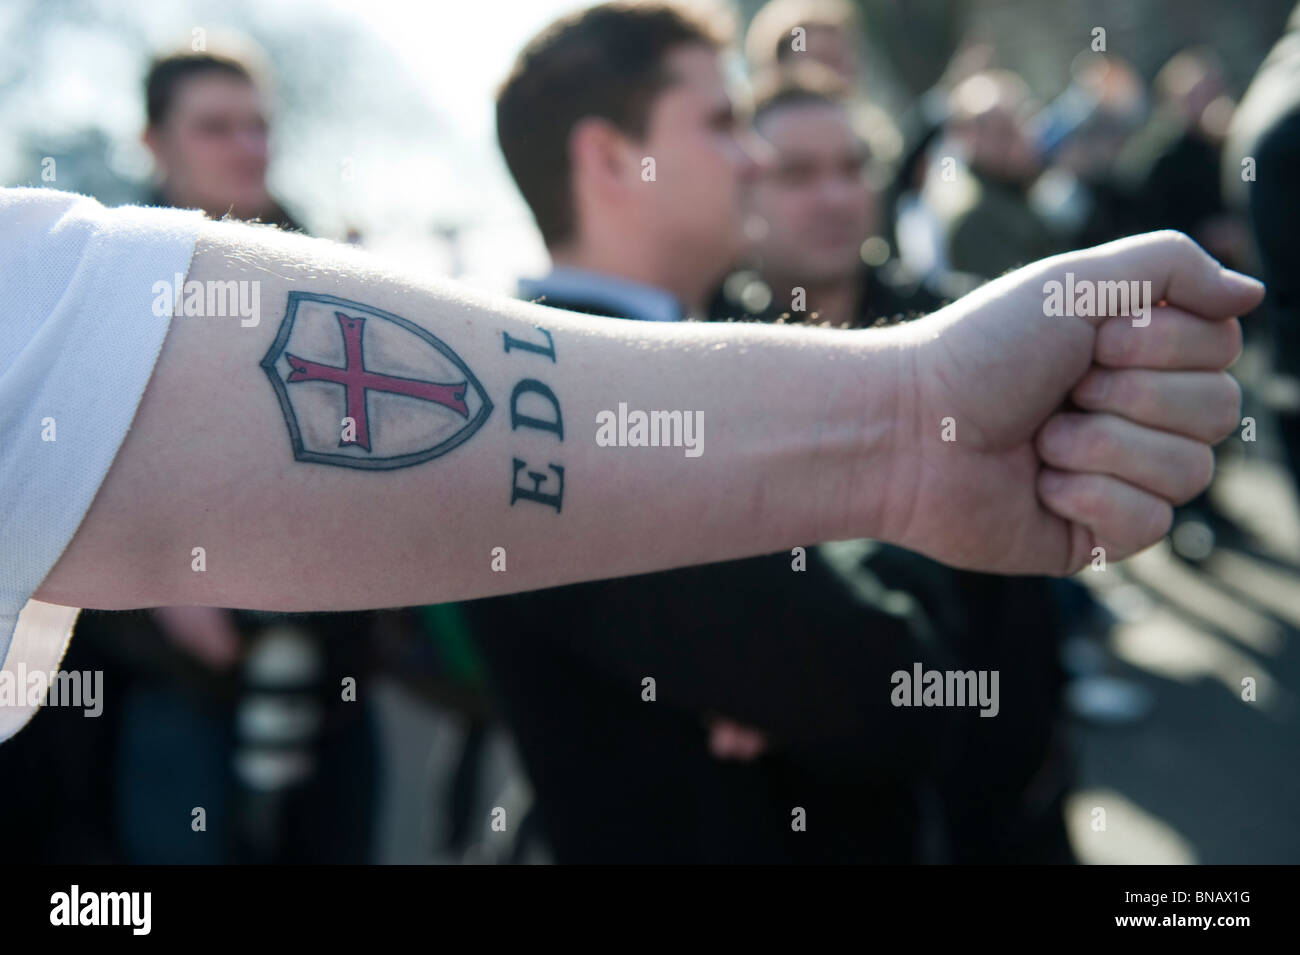 A member of the English Defence League  shows his EDL tattoo on his forearm - Stock Image